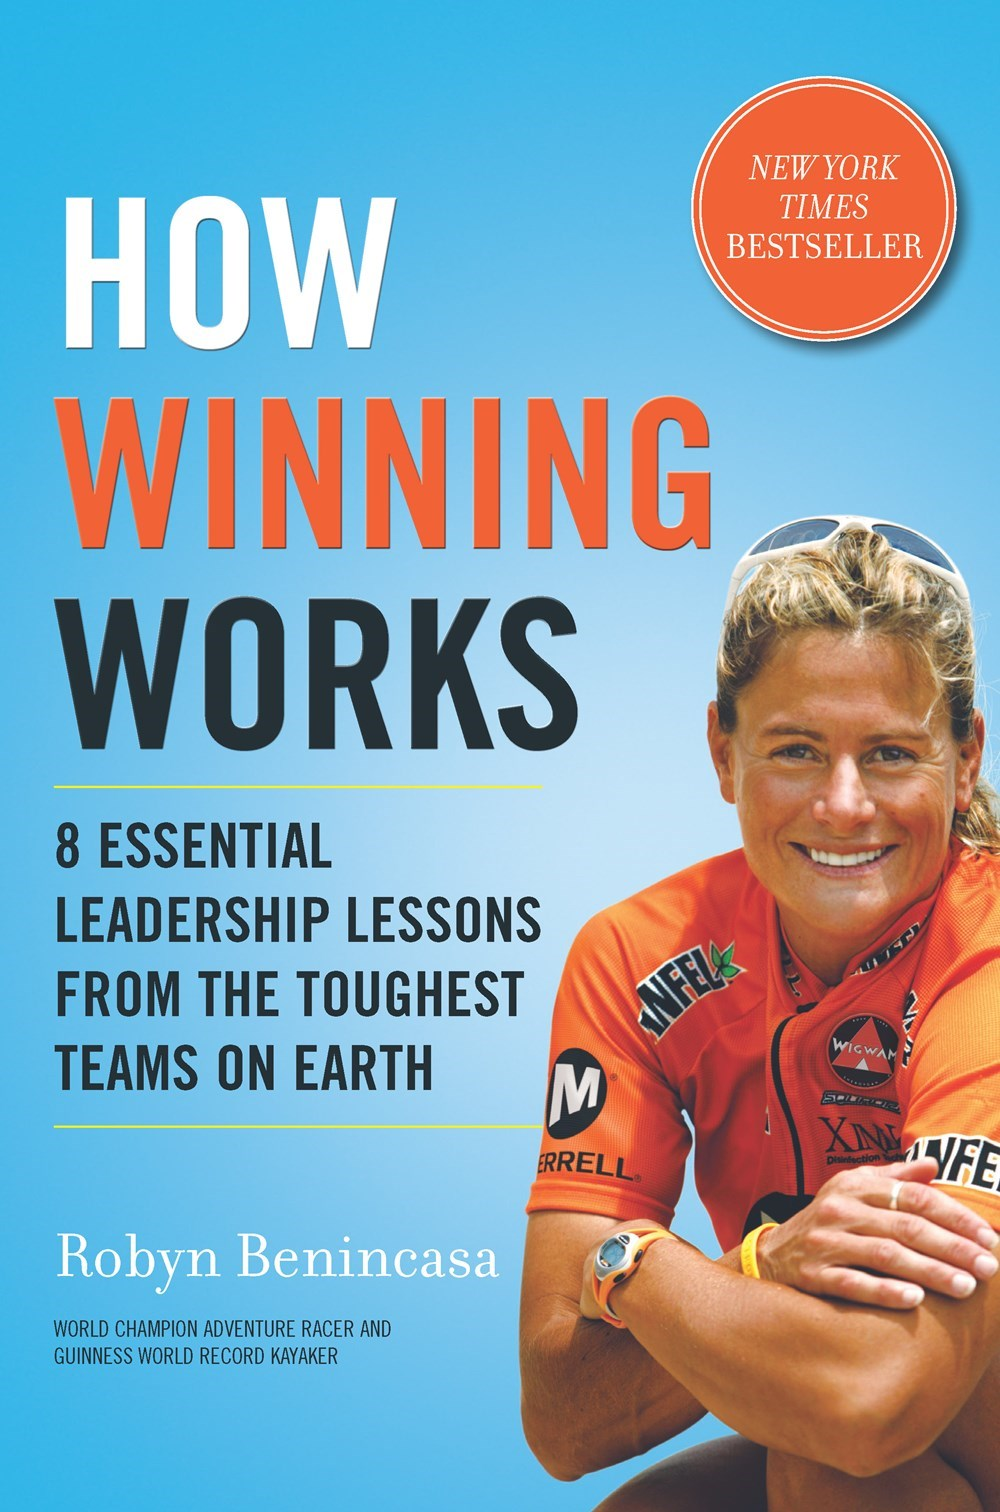 How Winning Works 8 Essential Leadership Lessons from the Toughest Teams on Earth